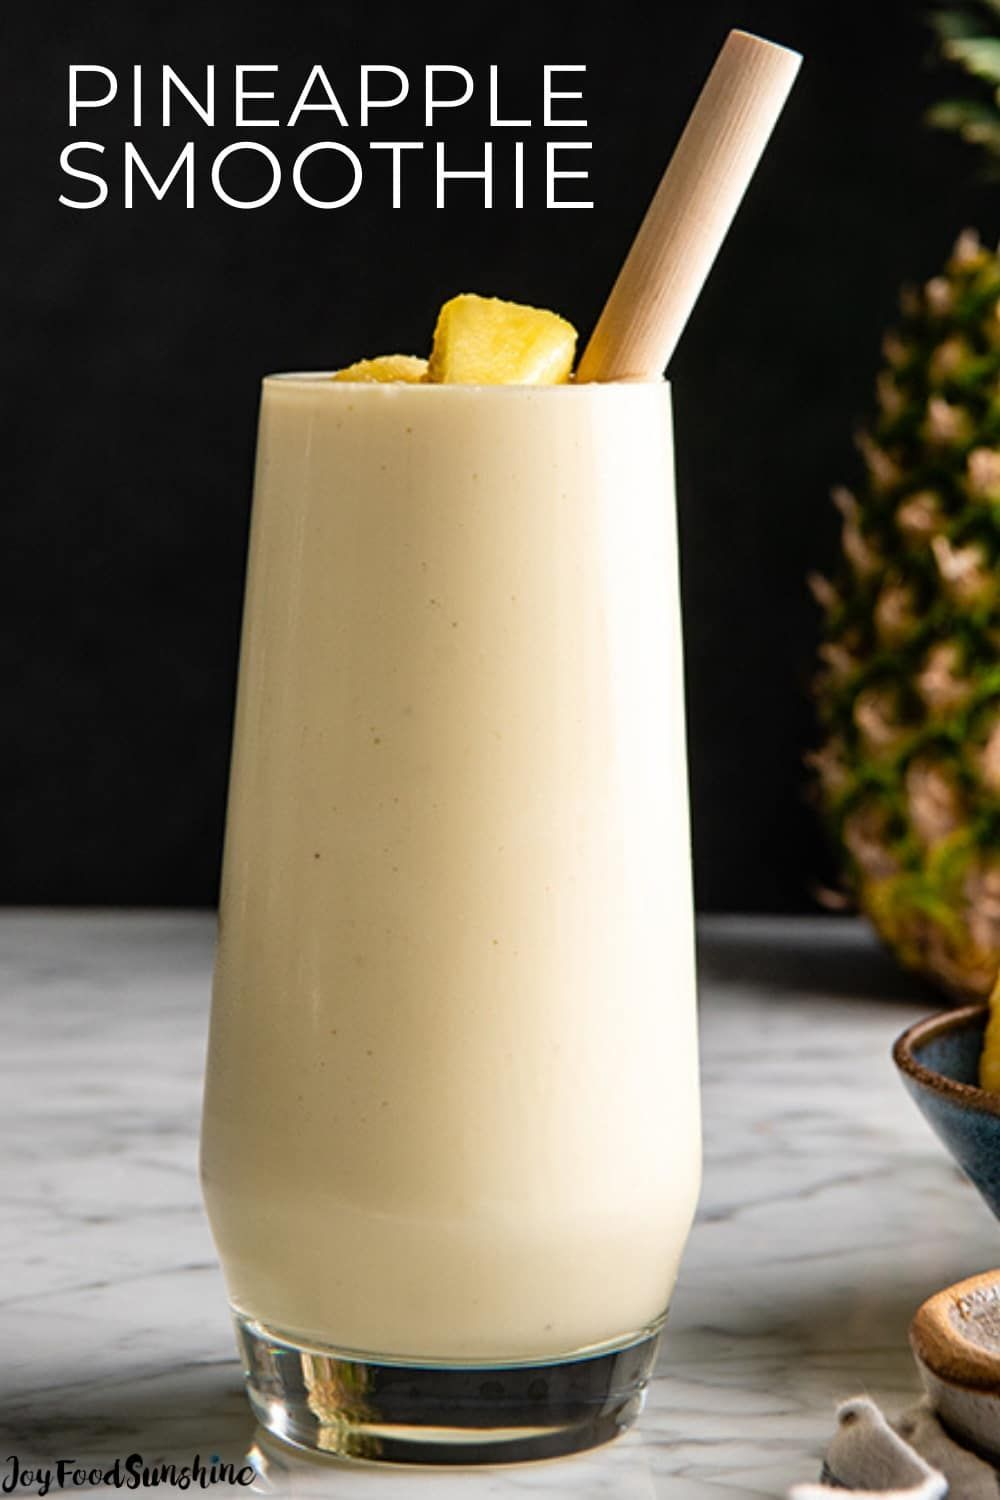 Healthy Pineapple Smoothie Recipe Pineapple Smoothie Recipes Free Smoothie Recipes Pineapple Smoothie